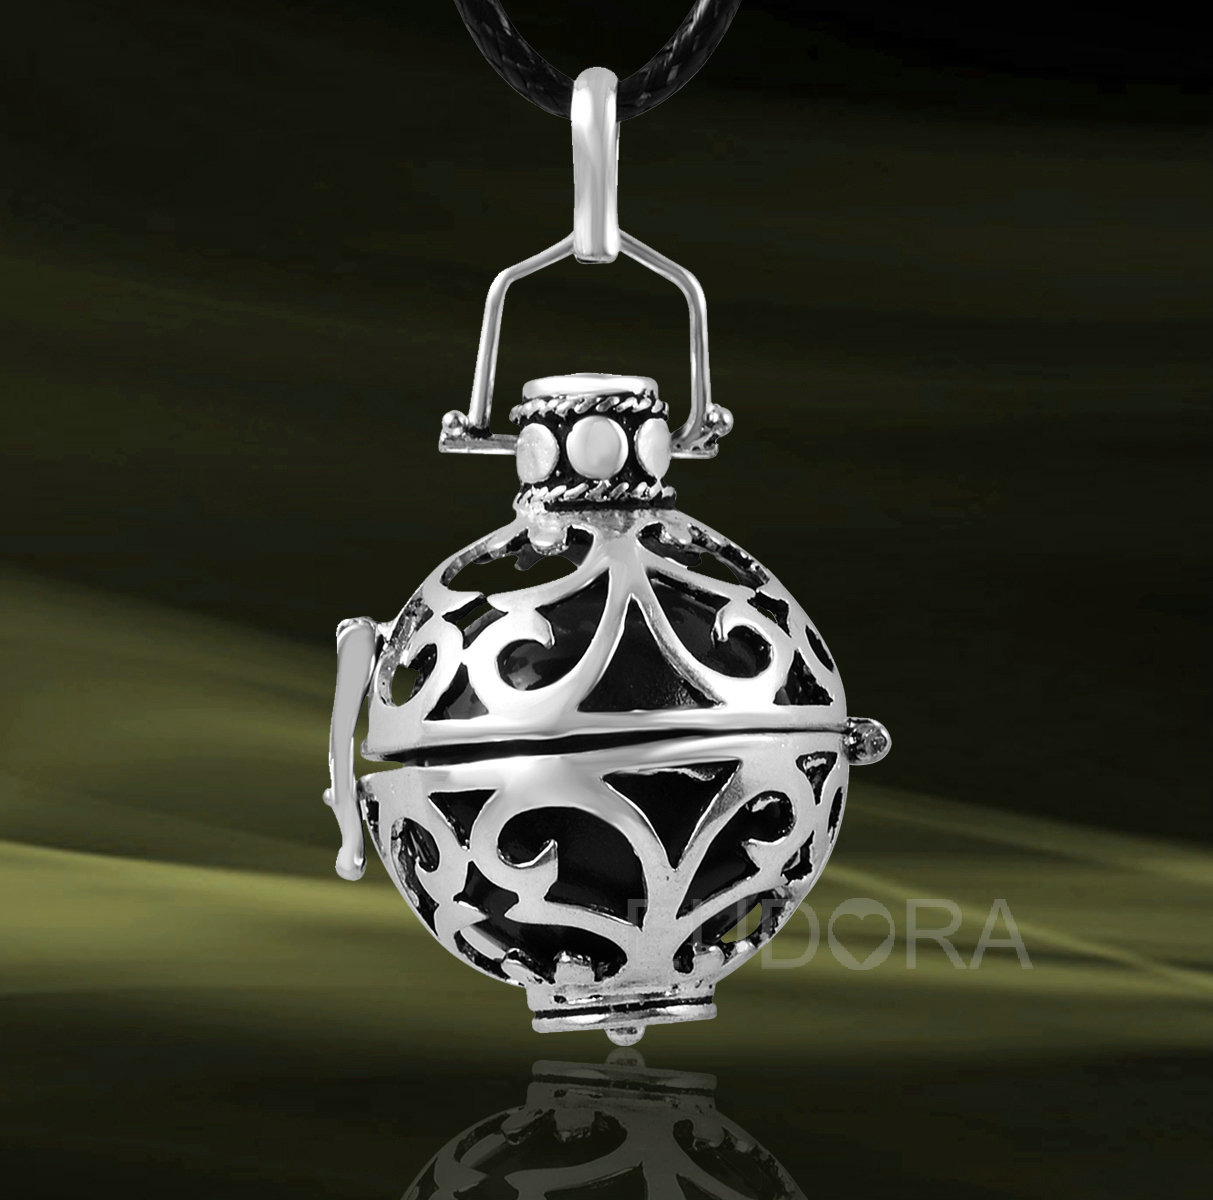 bola grossesse cage argent mexicain cadeau femme enceinte collier bola h02a08 ebay. Black Bedroom Furniture Sets. Home Design Ideas